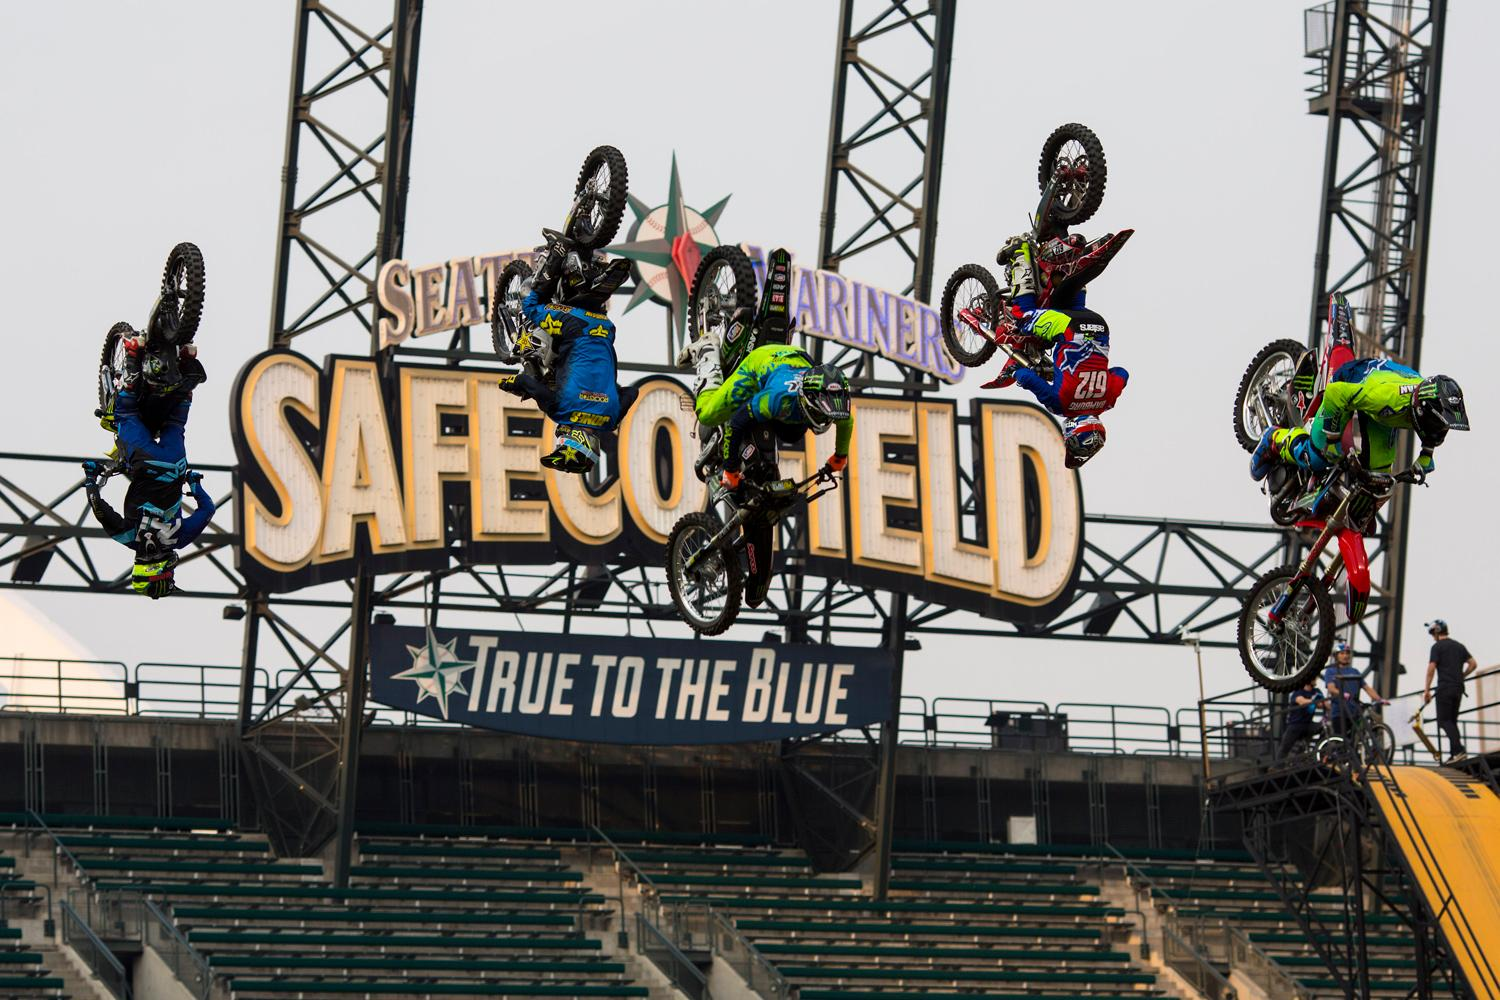 Safeco Field was transformed last night by high-adrenaline, stunt performing freestyle athletes during Nitro Circus Live. Athletes flew through the air on dirt bikes, scooters, lounge chairs, BMX bikes and more. The show has toured five continents and finally made its way to Seattle. (Sy Bean / Seattle Refined)